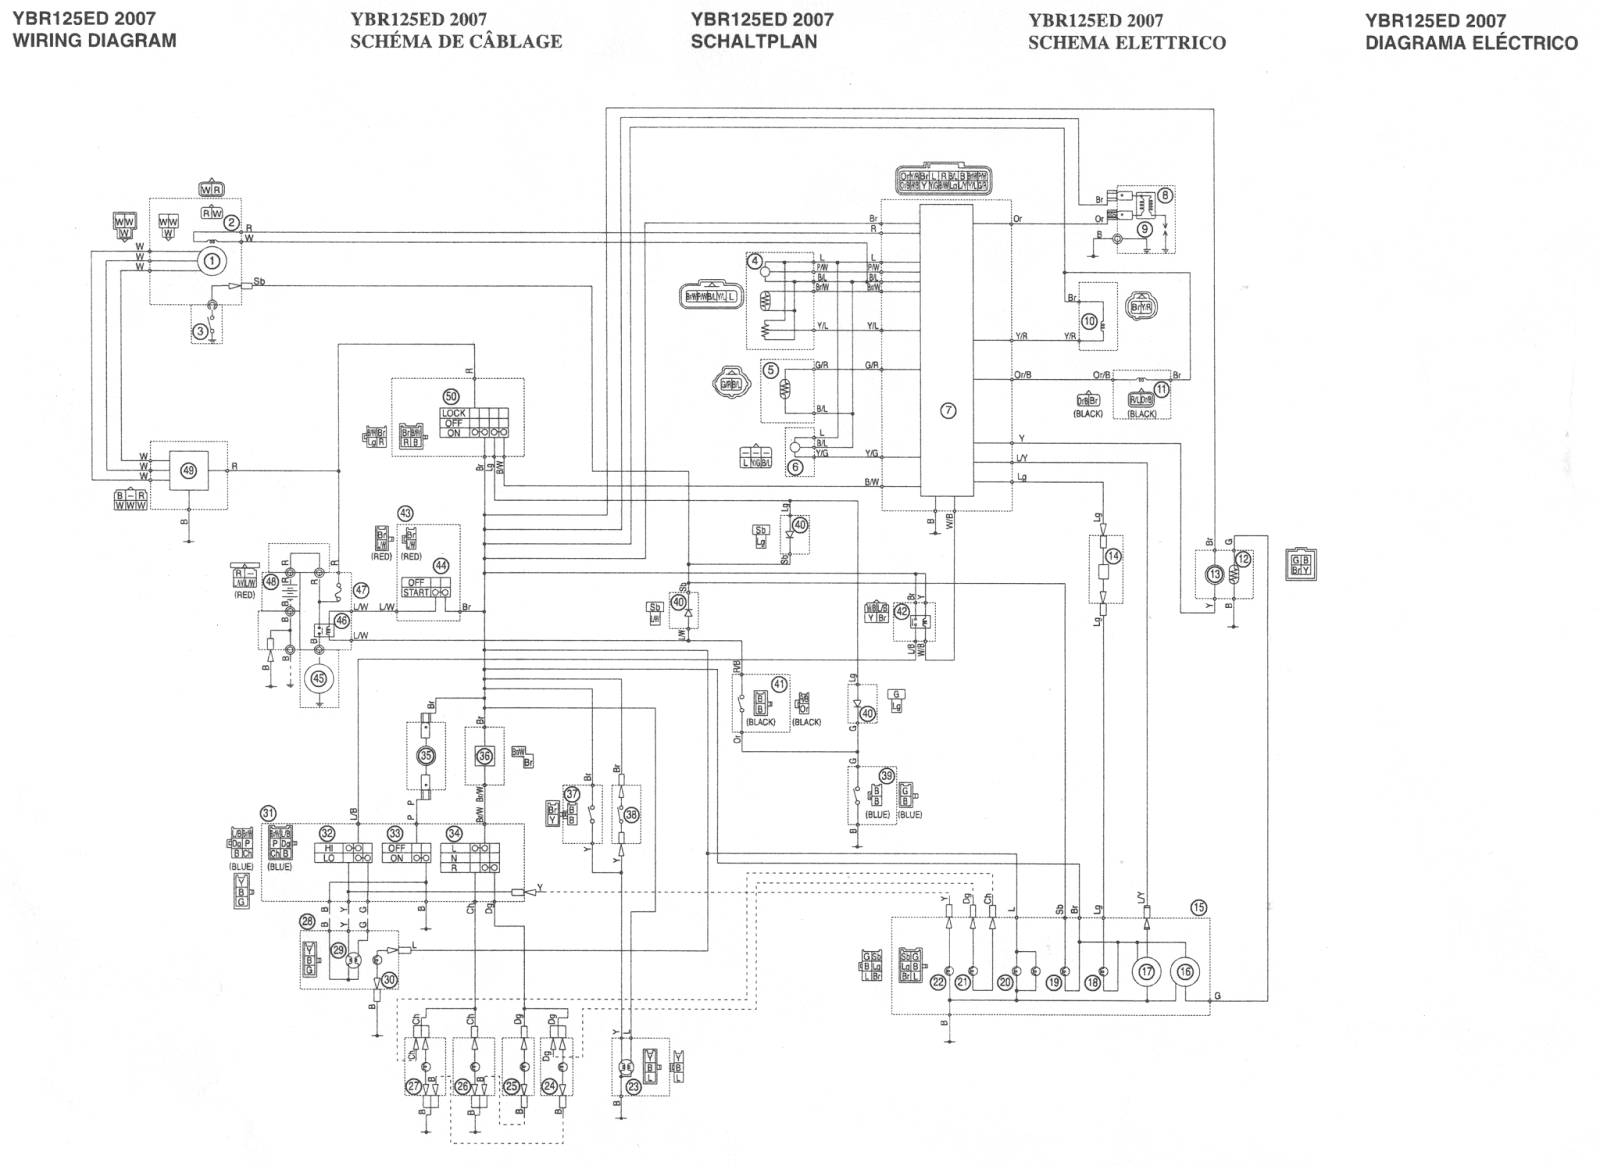 headlamp wiring diagram with Yamaha Ybr 125 Electrical System Wiring on 1986 Nissan 300zx Wiring Harness also Yamaha Ybr 125 Electrical System Wiring together with T14843434 Witch relay works headlights 98 ford as well Schematics i together with 7 Pin Trailer Harness.